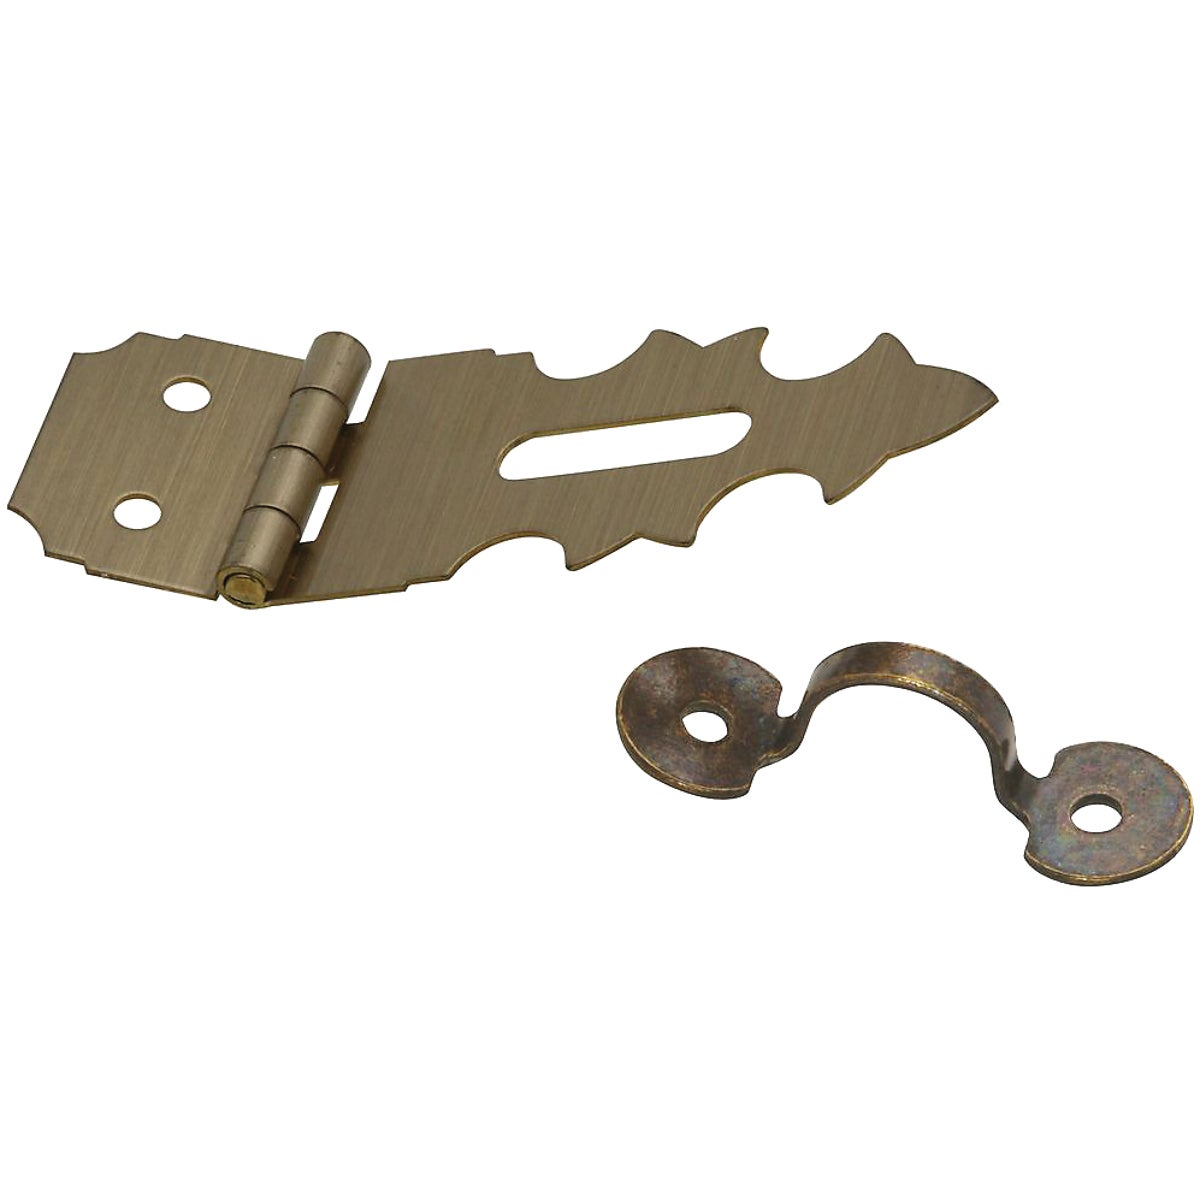 5/8X1-7/8 AB HASP - N211474 by National Mfg Co